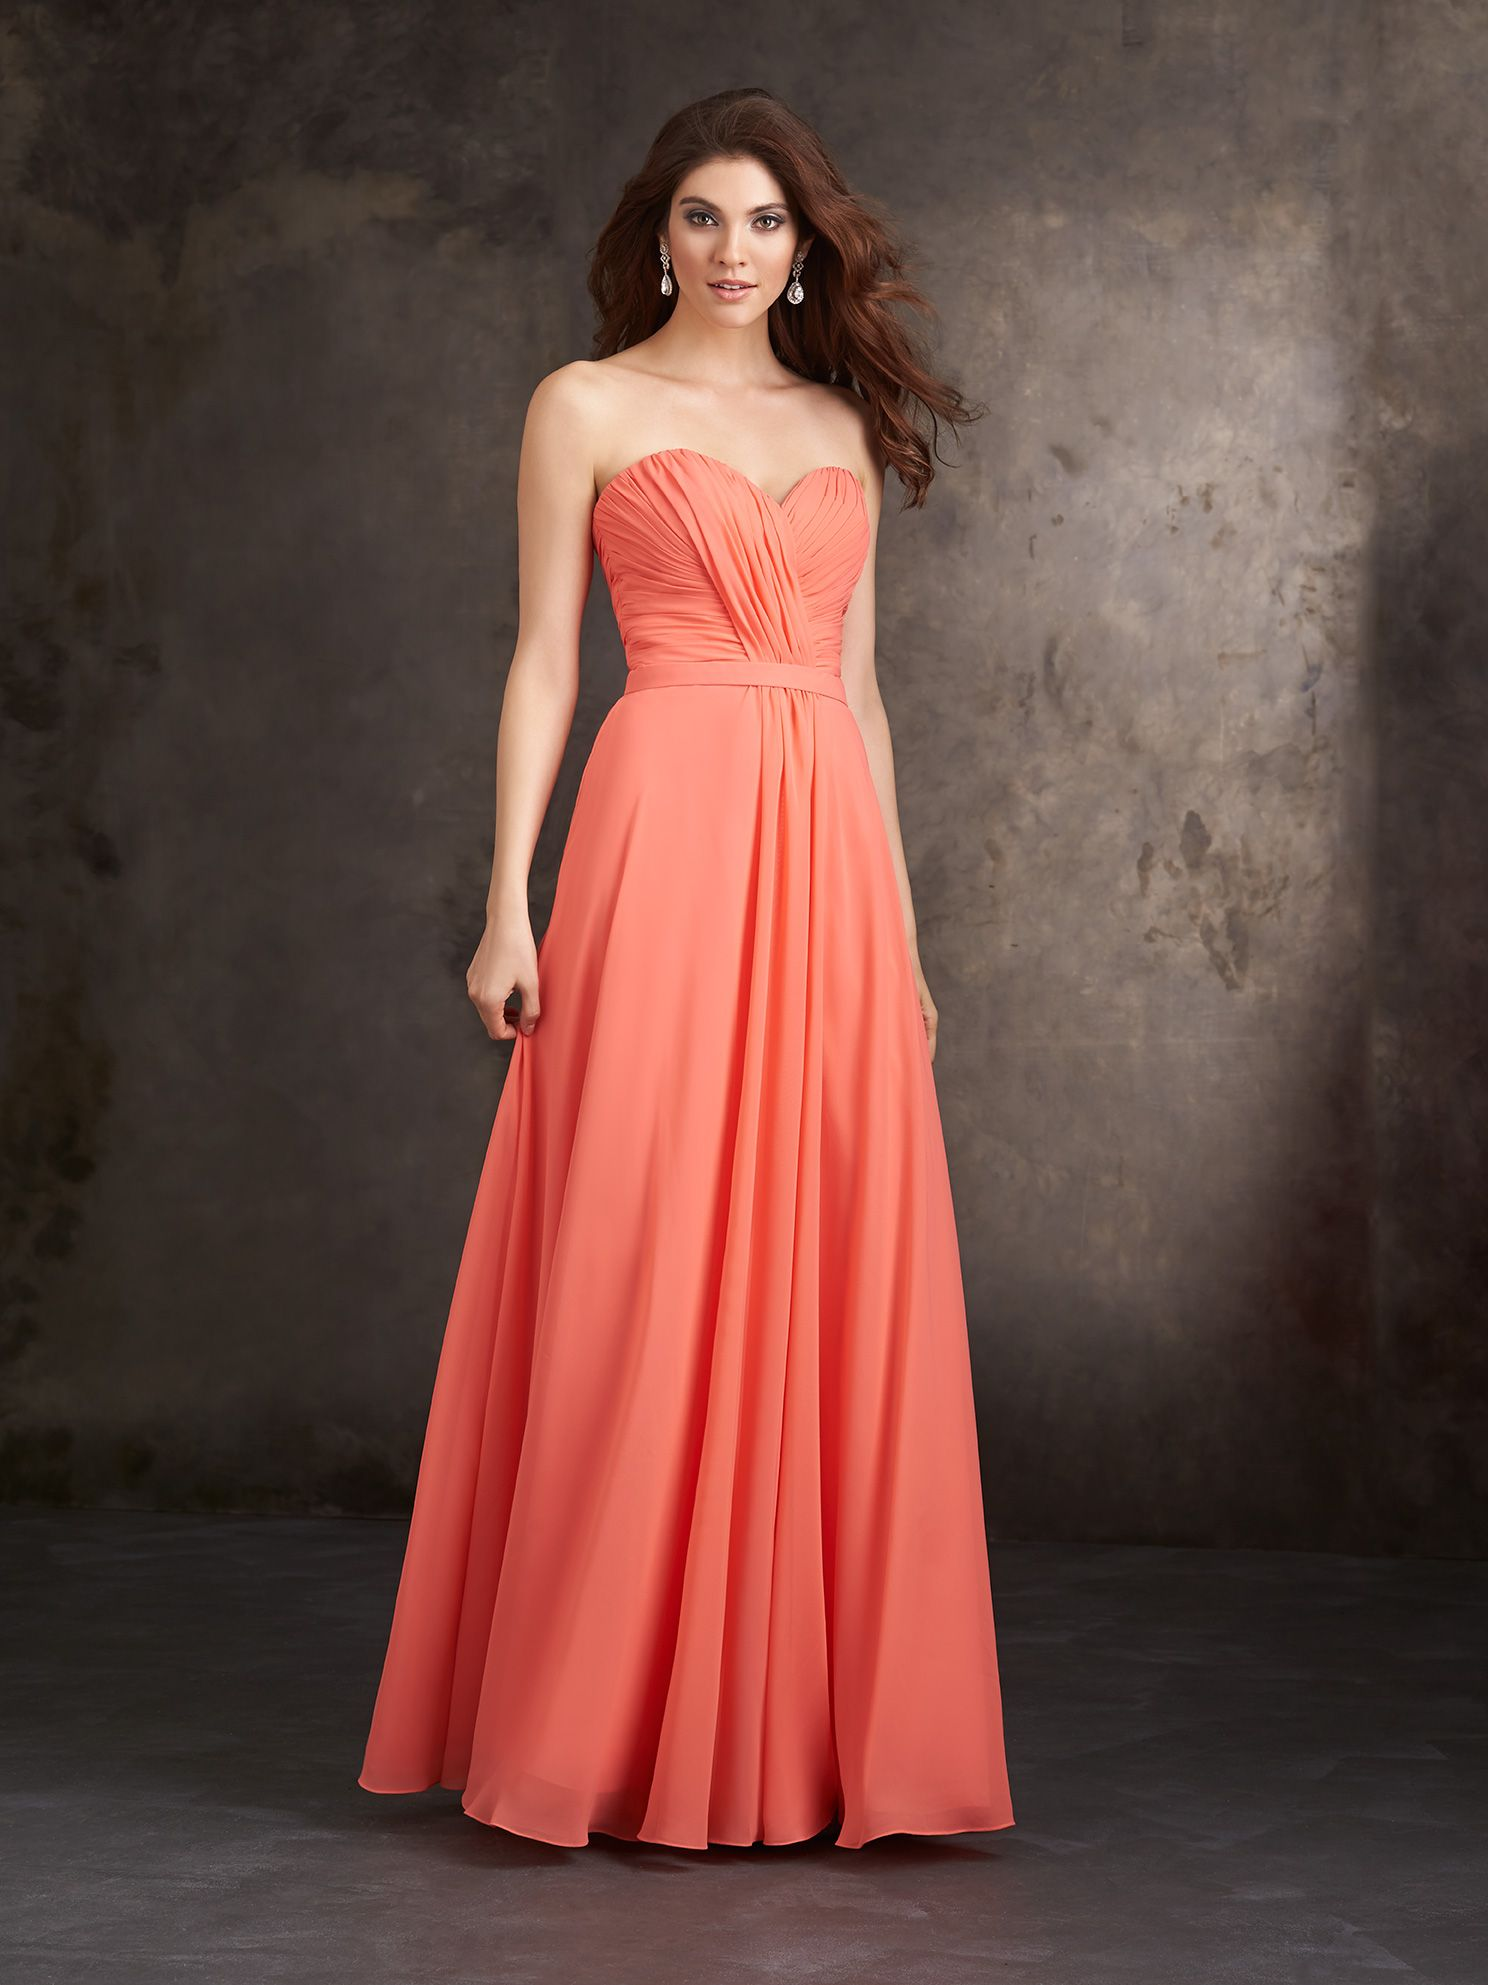 b9fd926d15f Allure Bridesmaids STYLE  1415 This strapless sweetheart dress features  gracefully draped chiffon.